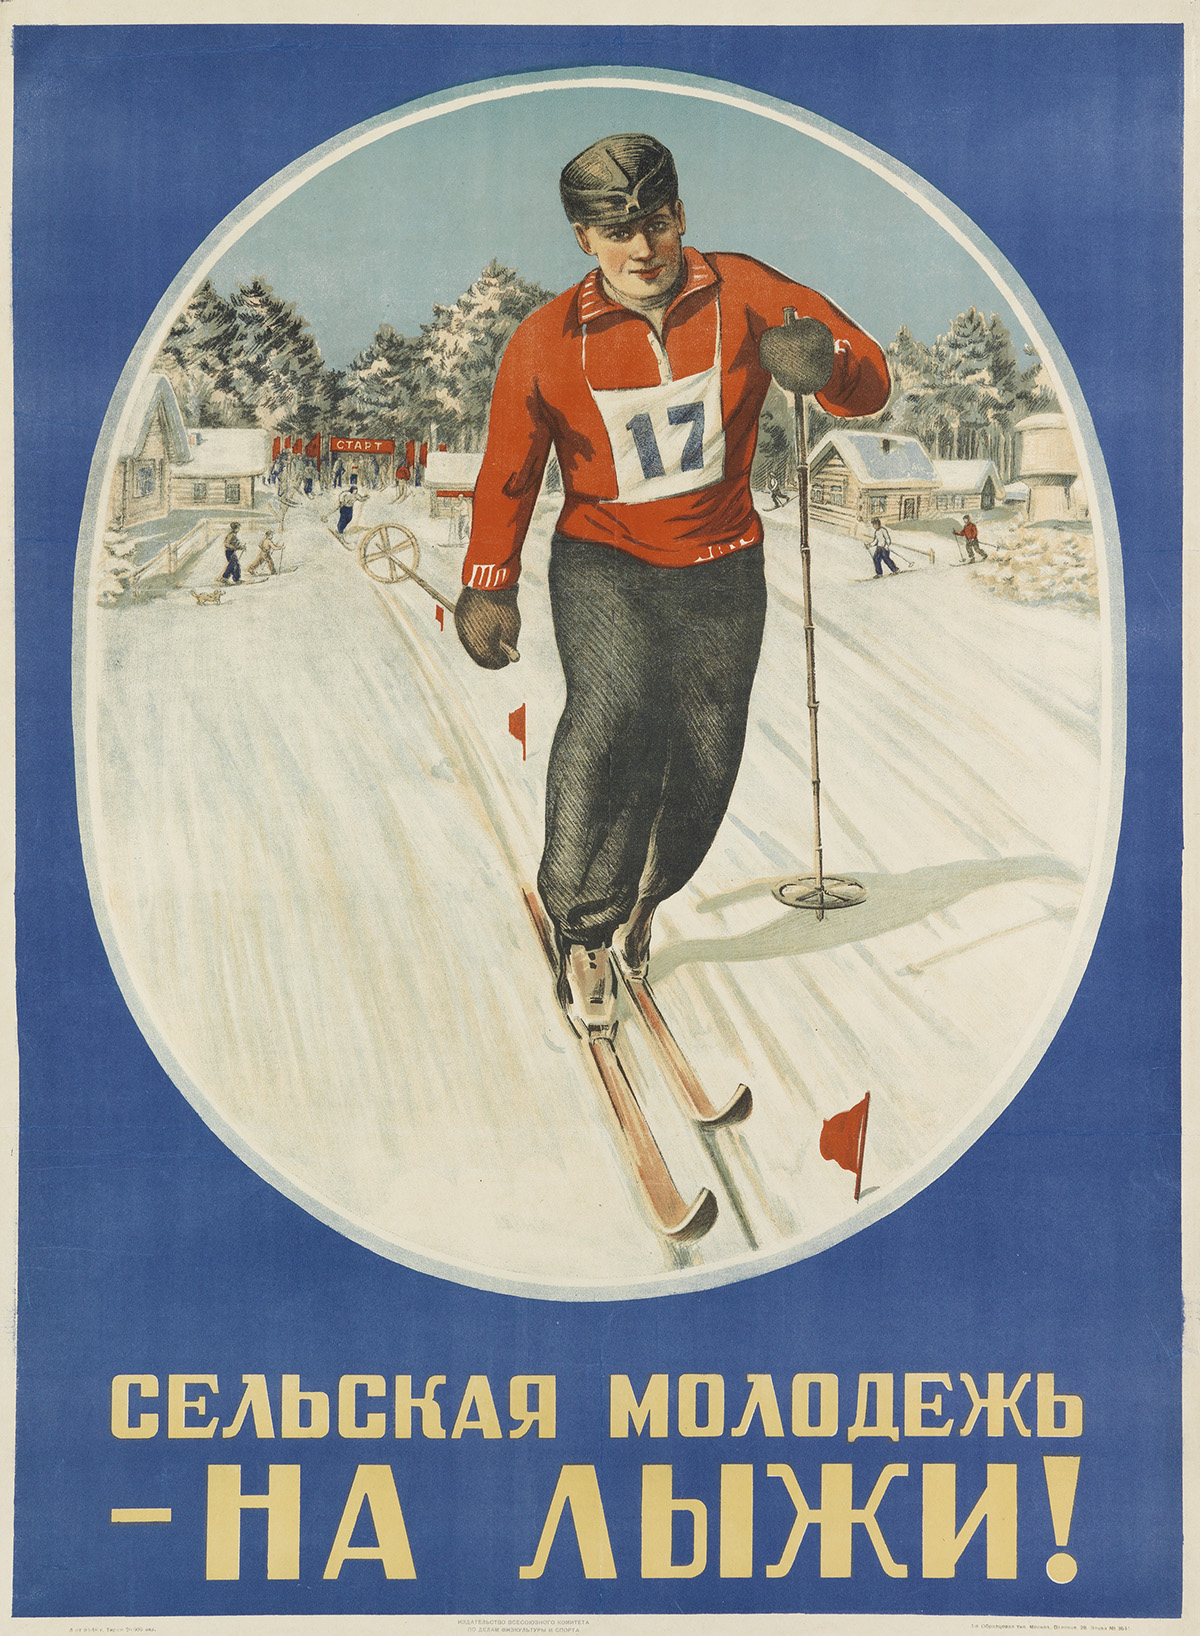 DESIGNER-UNKNOWN-[RURAL-YOUTH---ON-SKIS]-Circa-1940s-32x24-inches-83x61-cm-The-All-Union-Committee-on-Physical-Culture-and-Sports